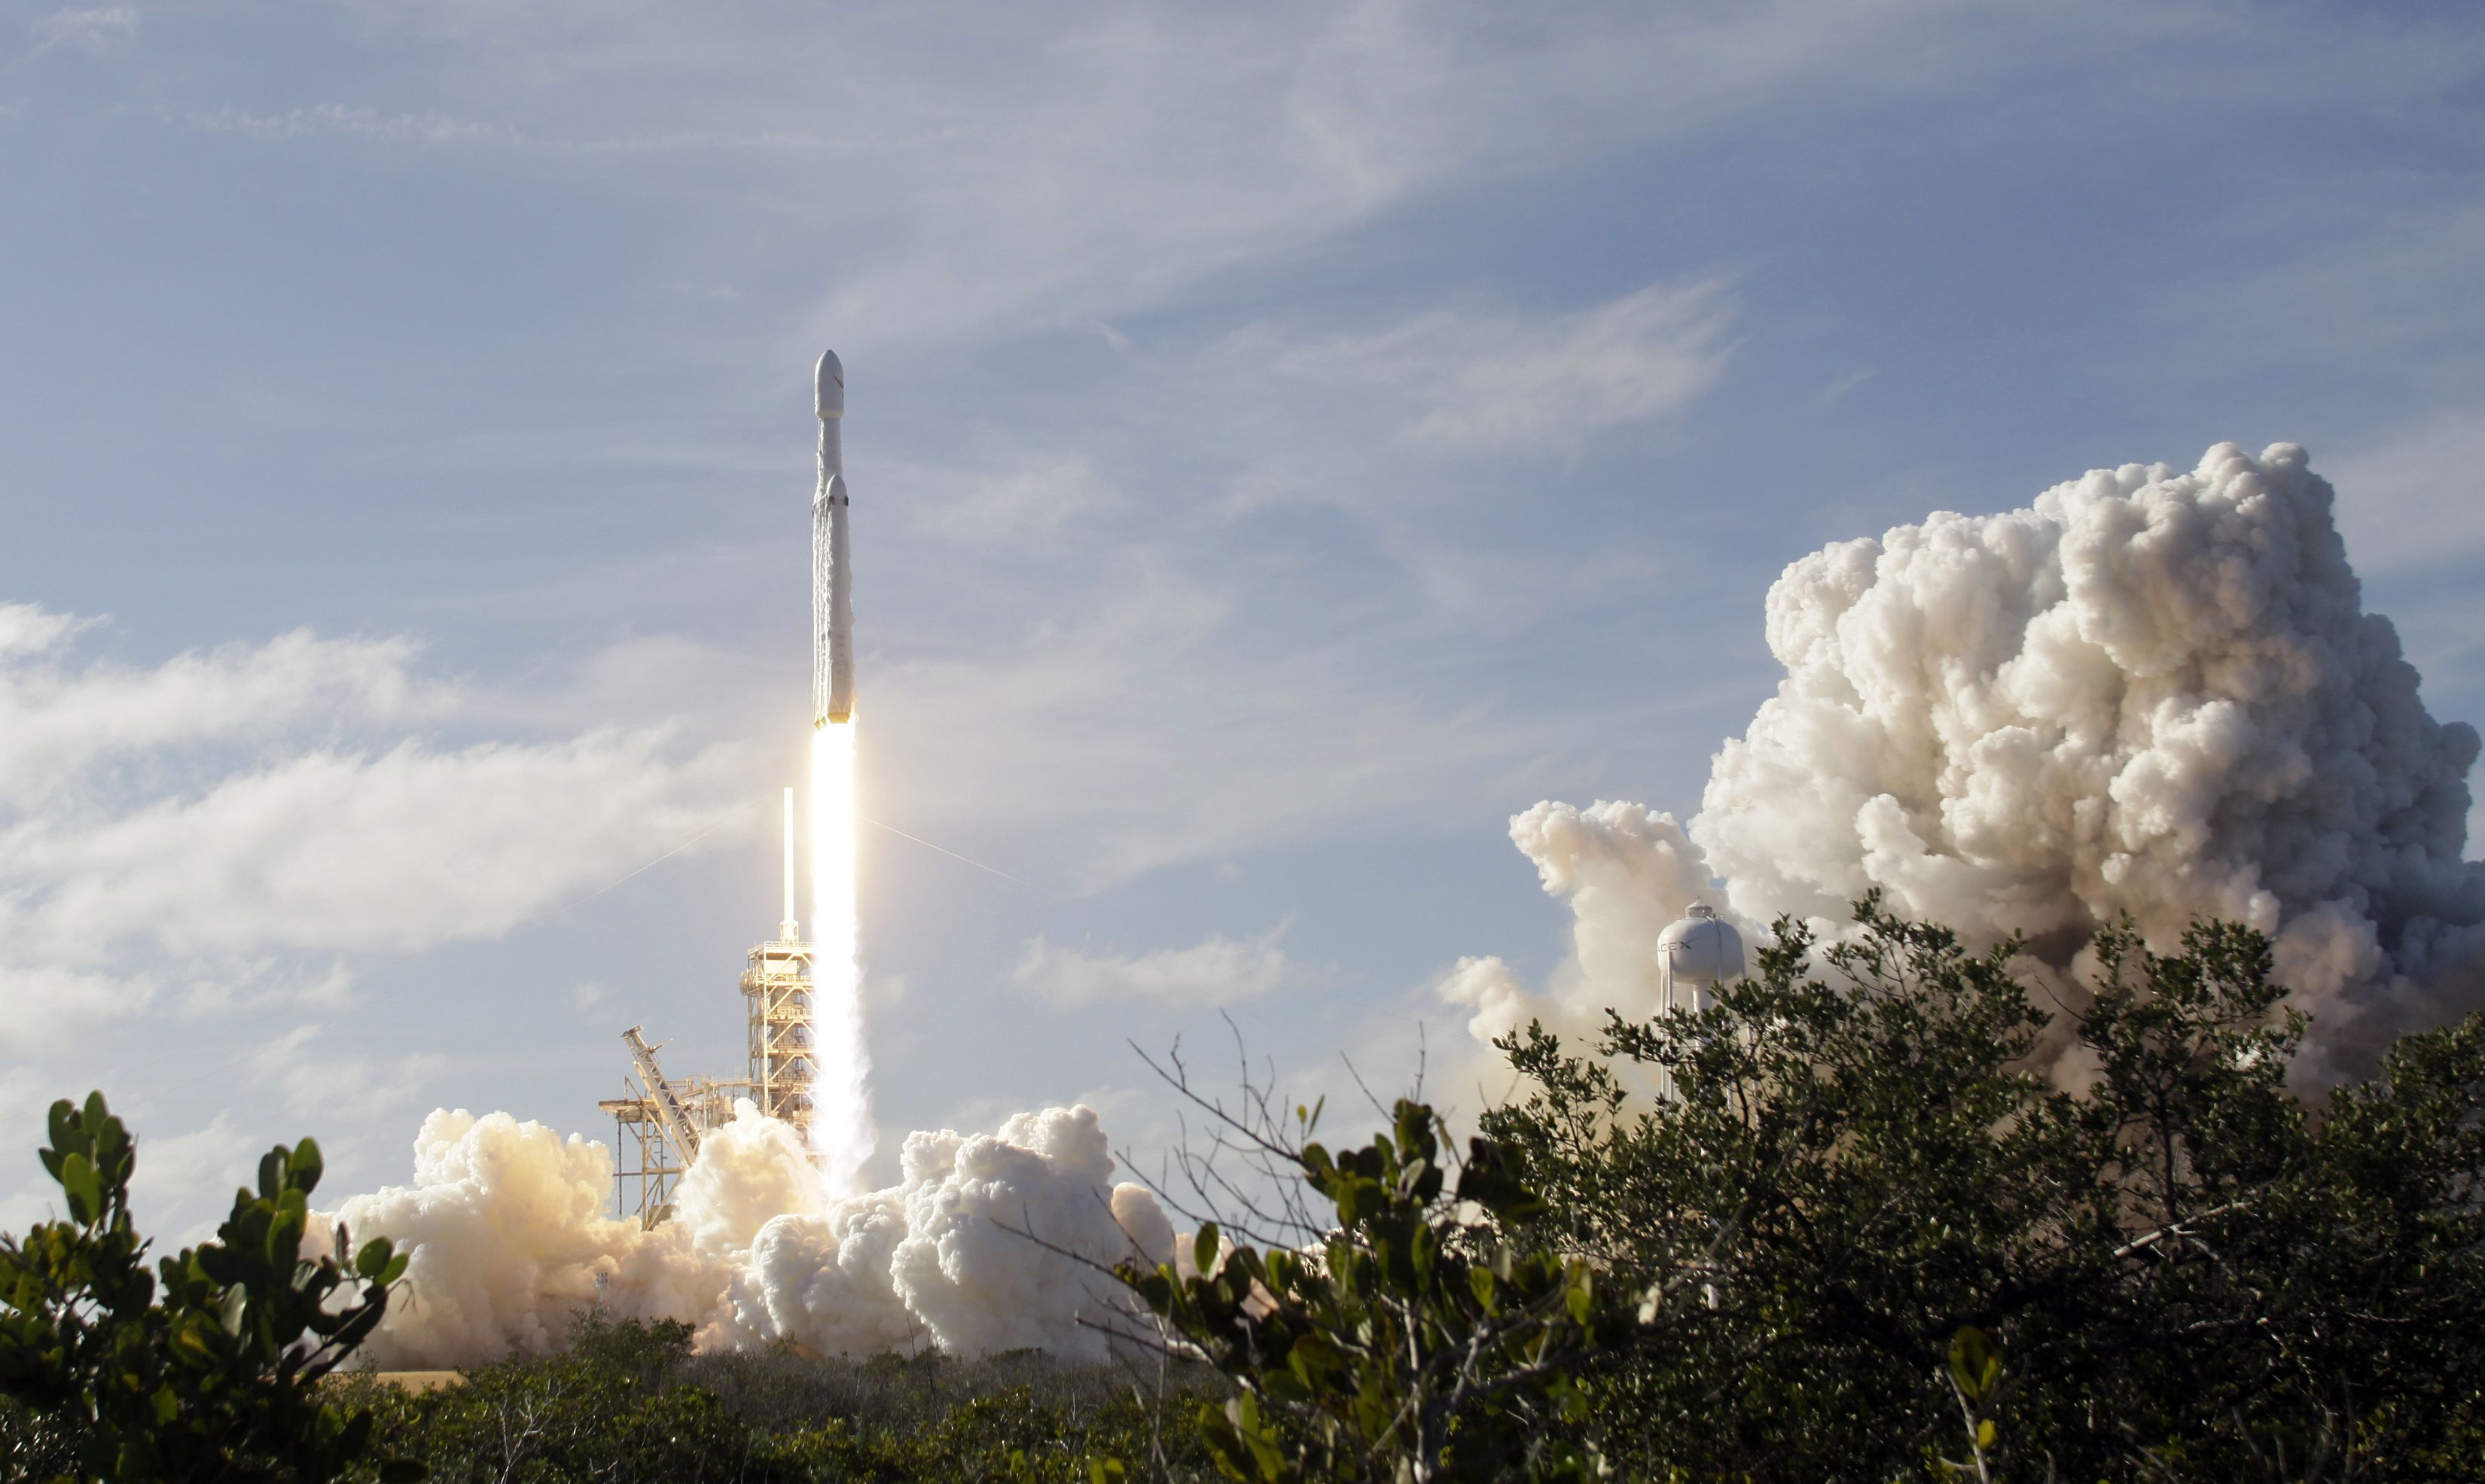 Falcon 9 landing leg breaks free, slams into the deck of the company's droneship